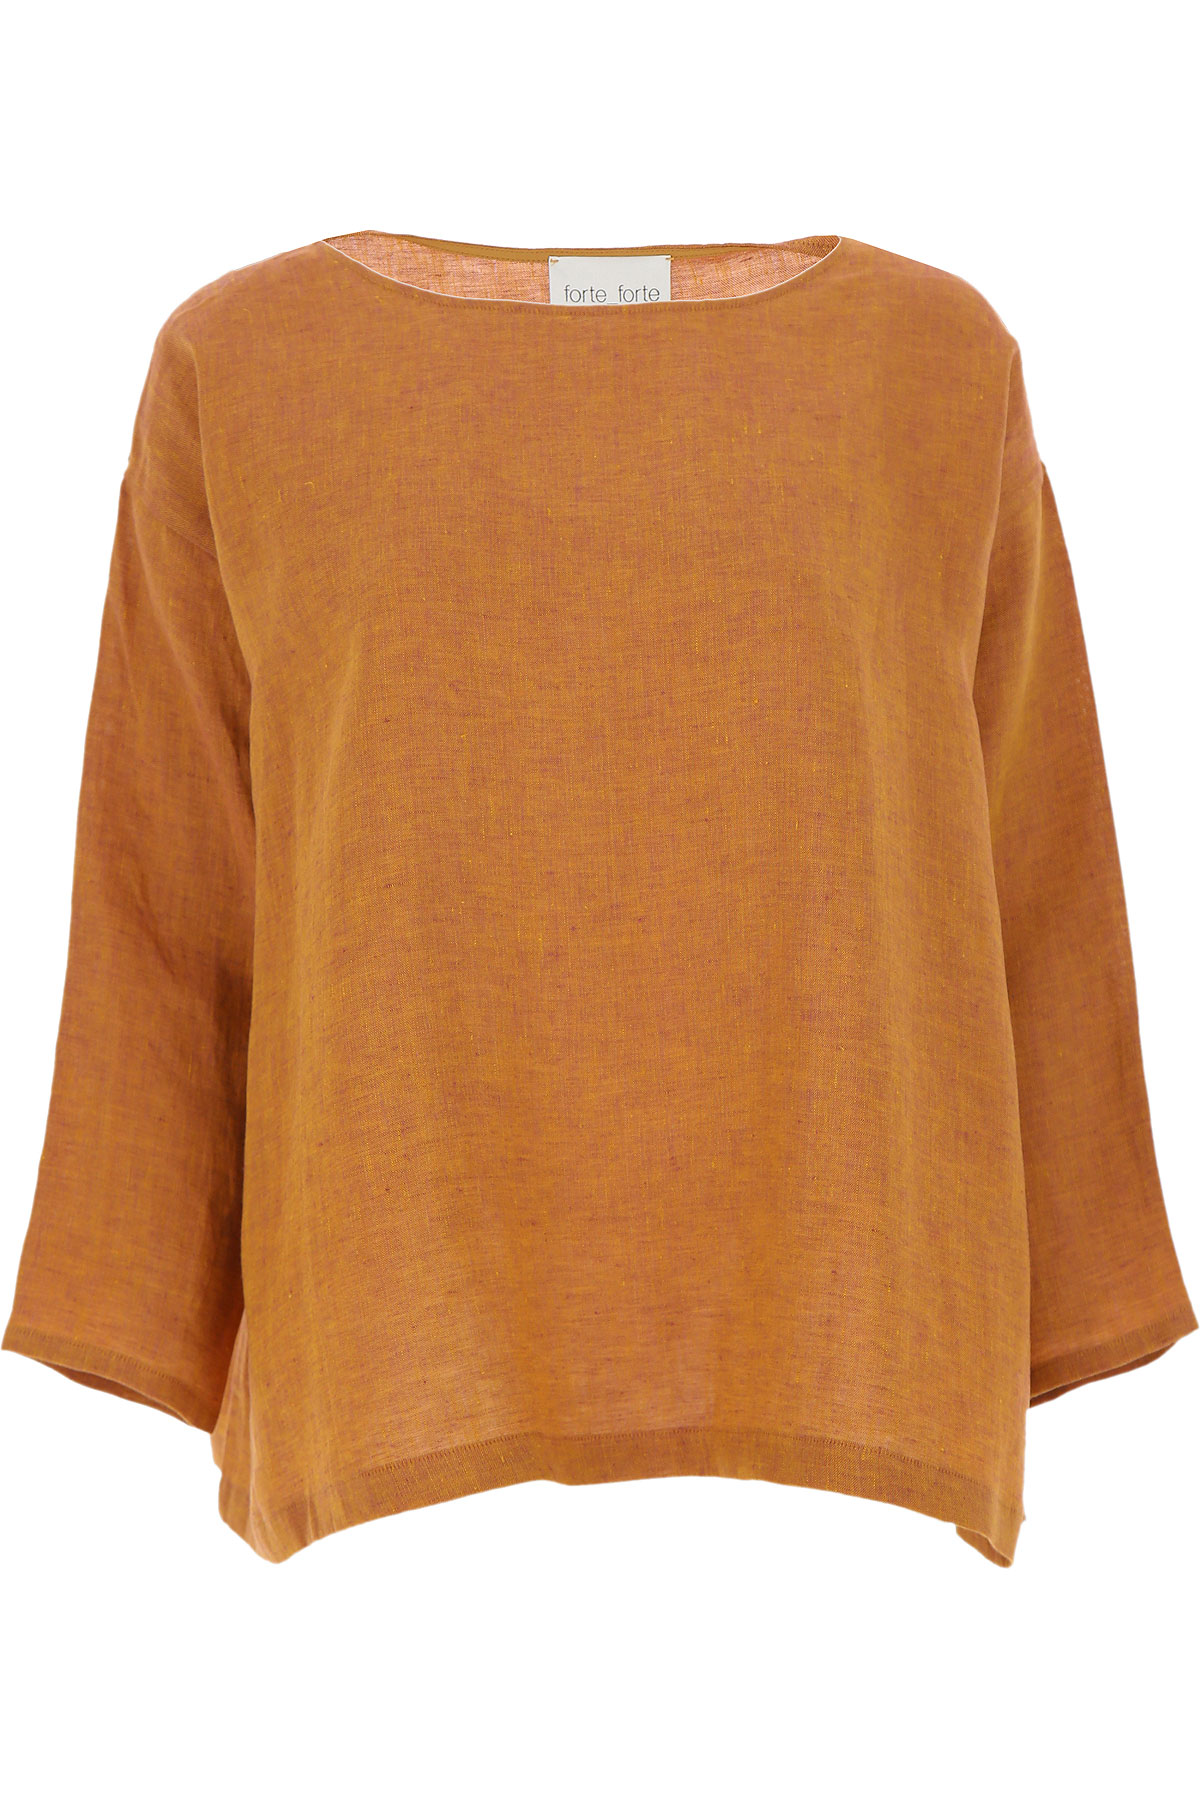 Forte Forte Top for Women On Sale, Cinnamon, linen, 2019, 1 - S - IT 40 2 - M - IT 42